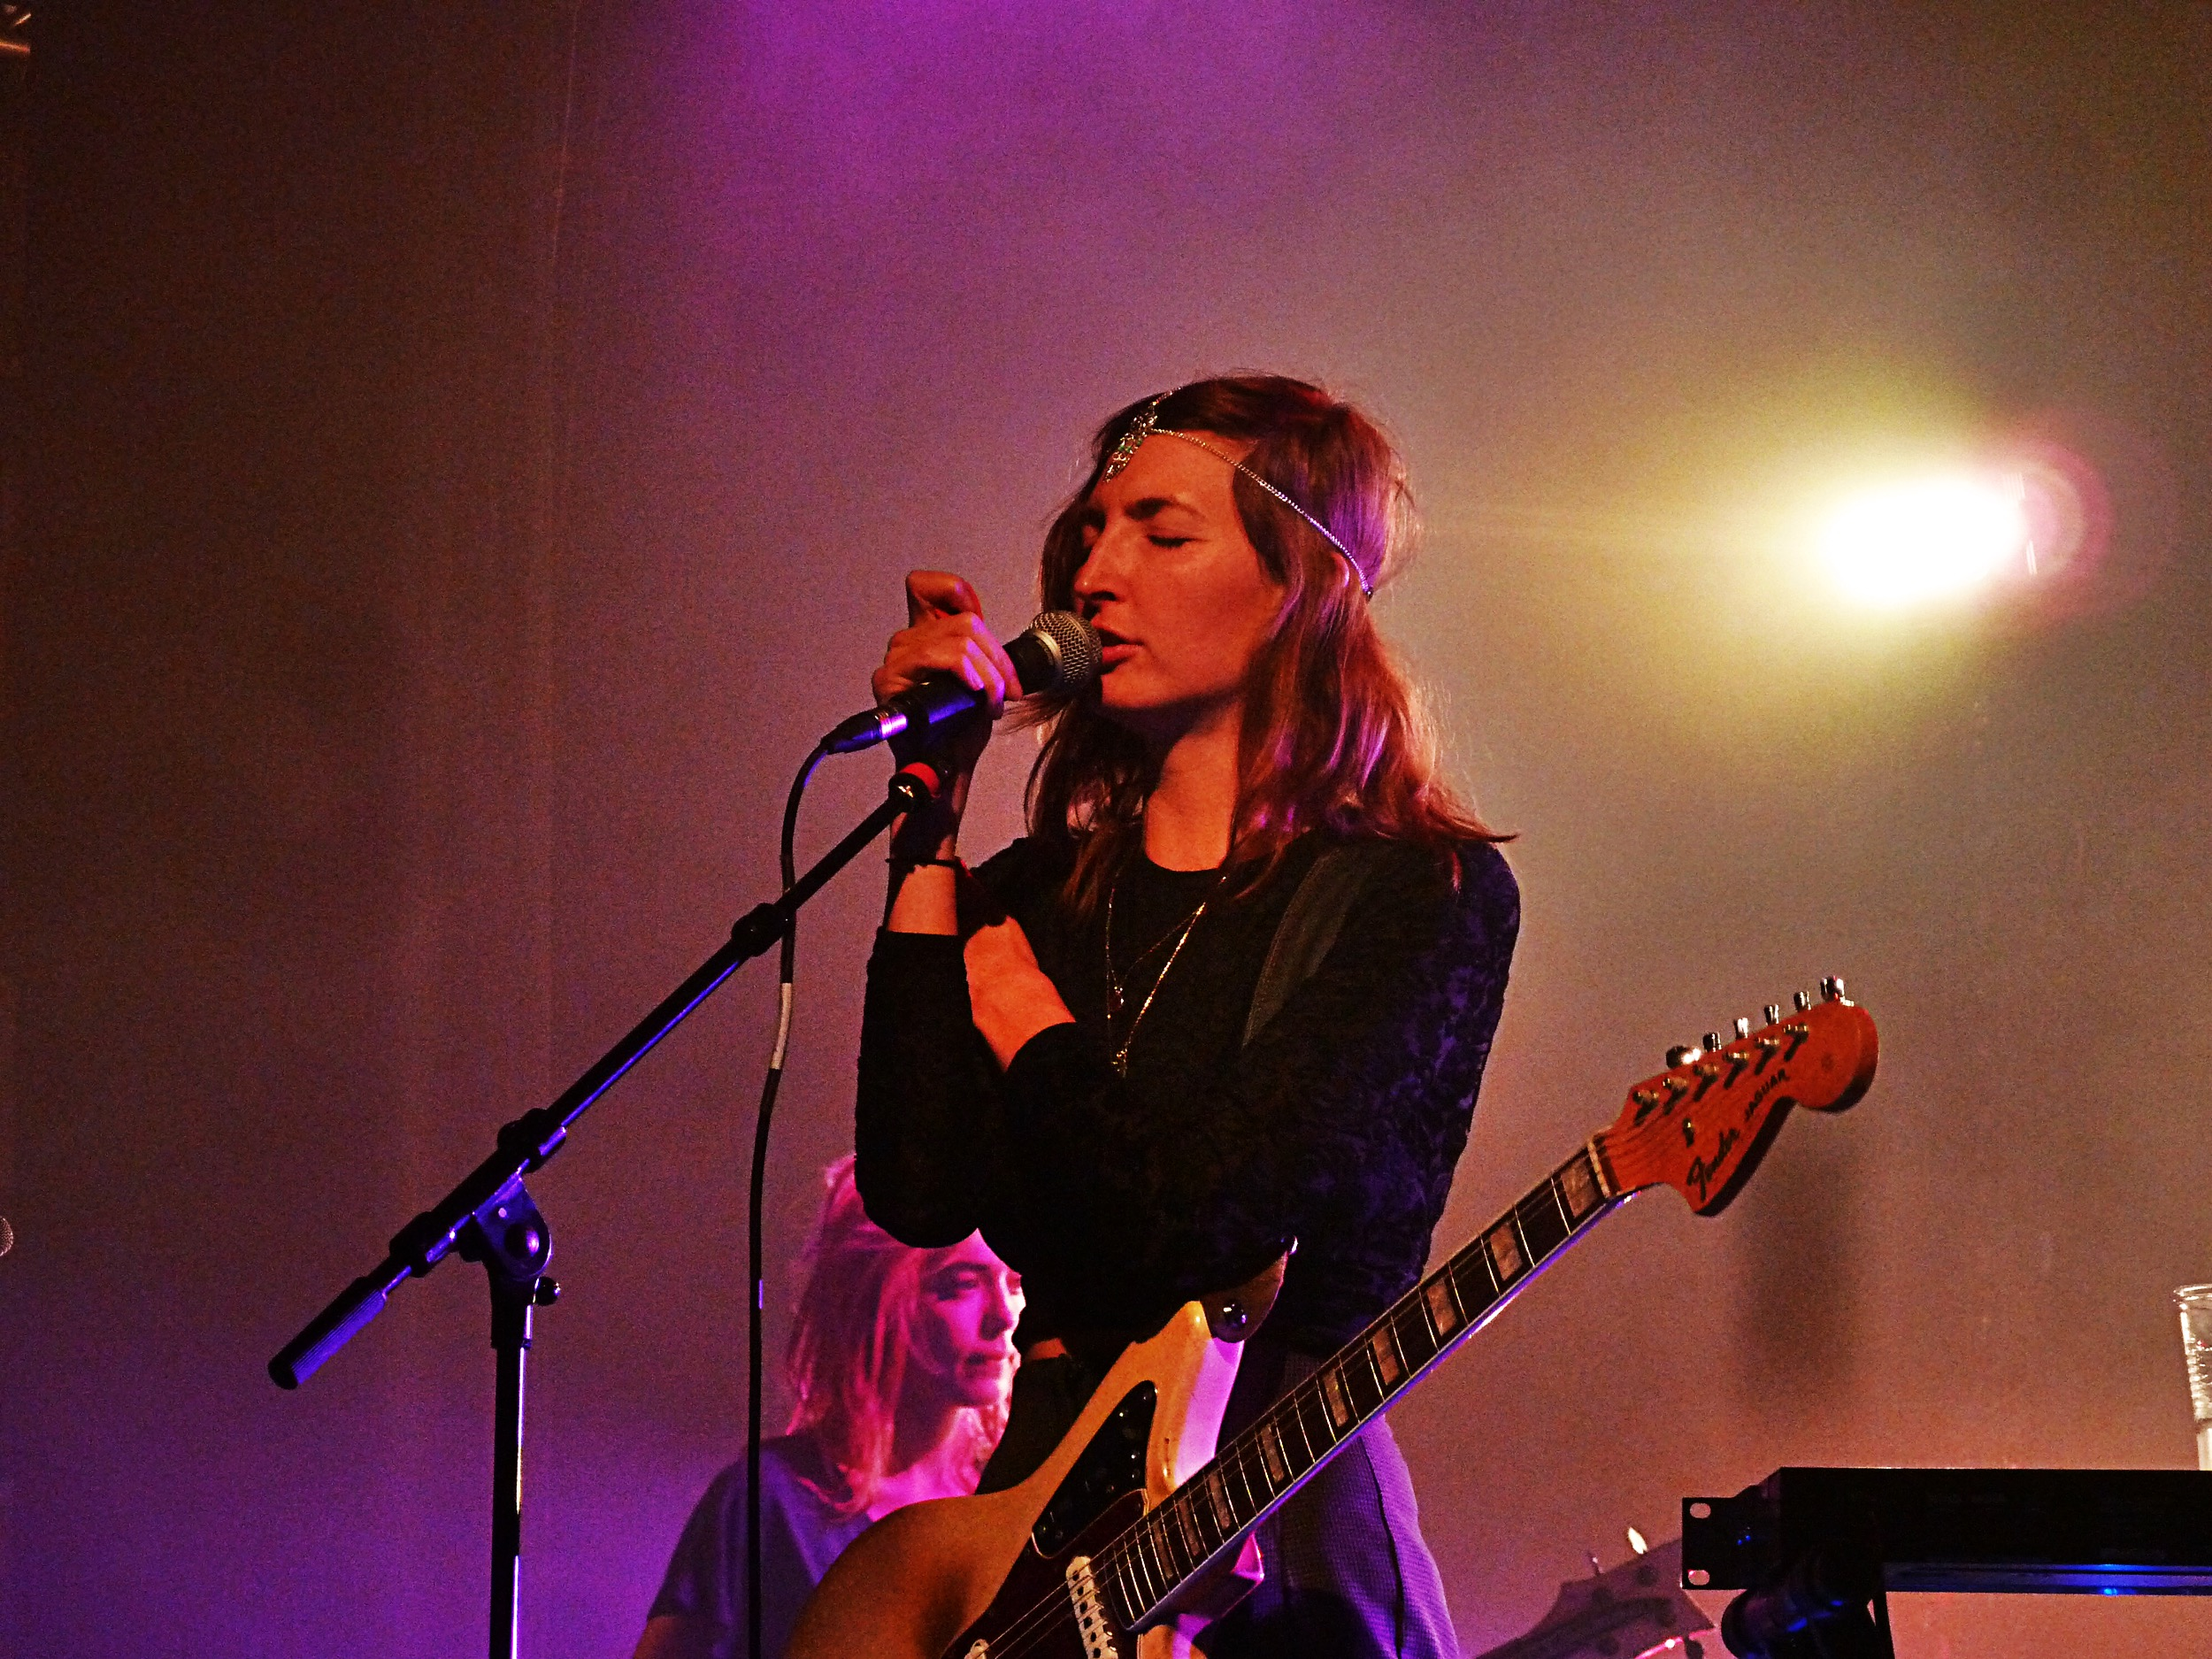 Emily Kokal Warpaint music band singer live concert tour Le Trianon Paris photo by United States of Paris blog